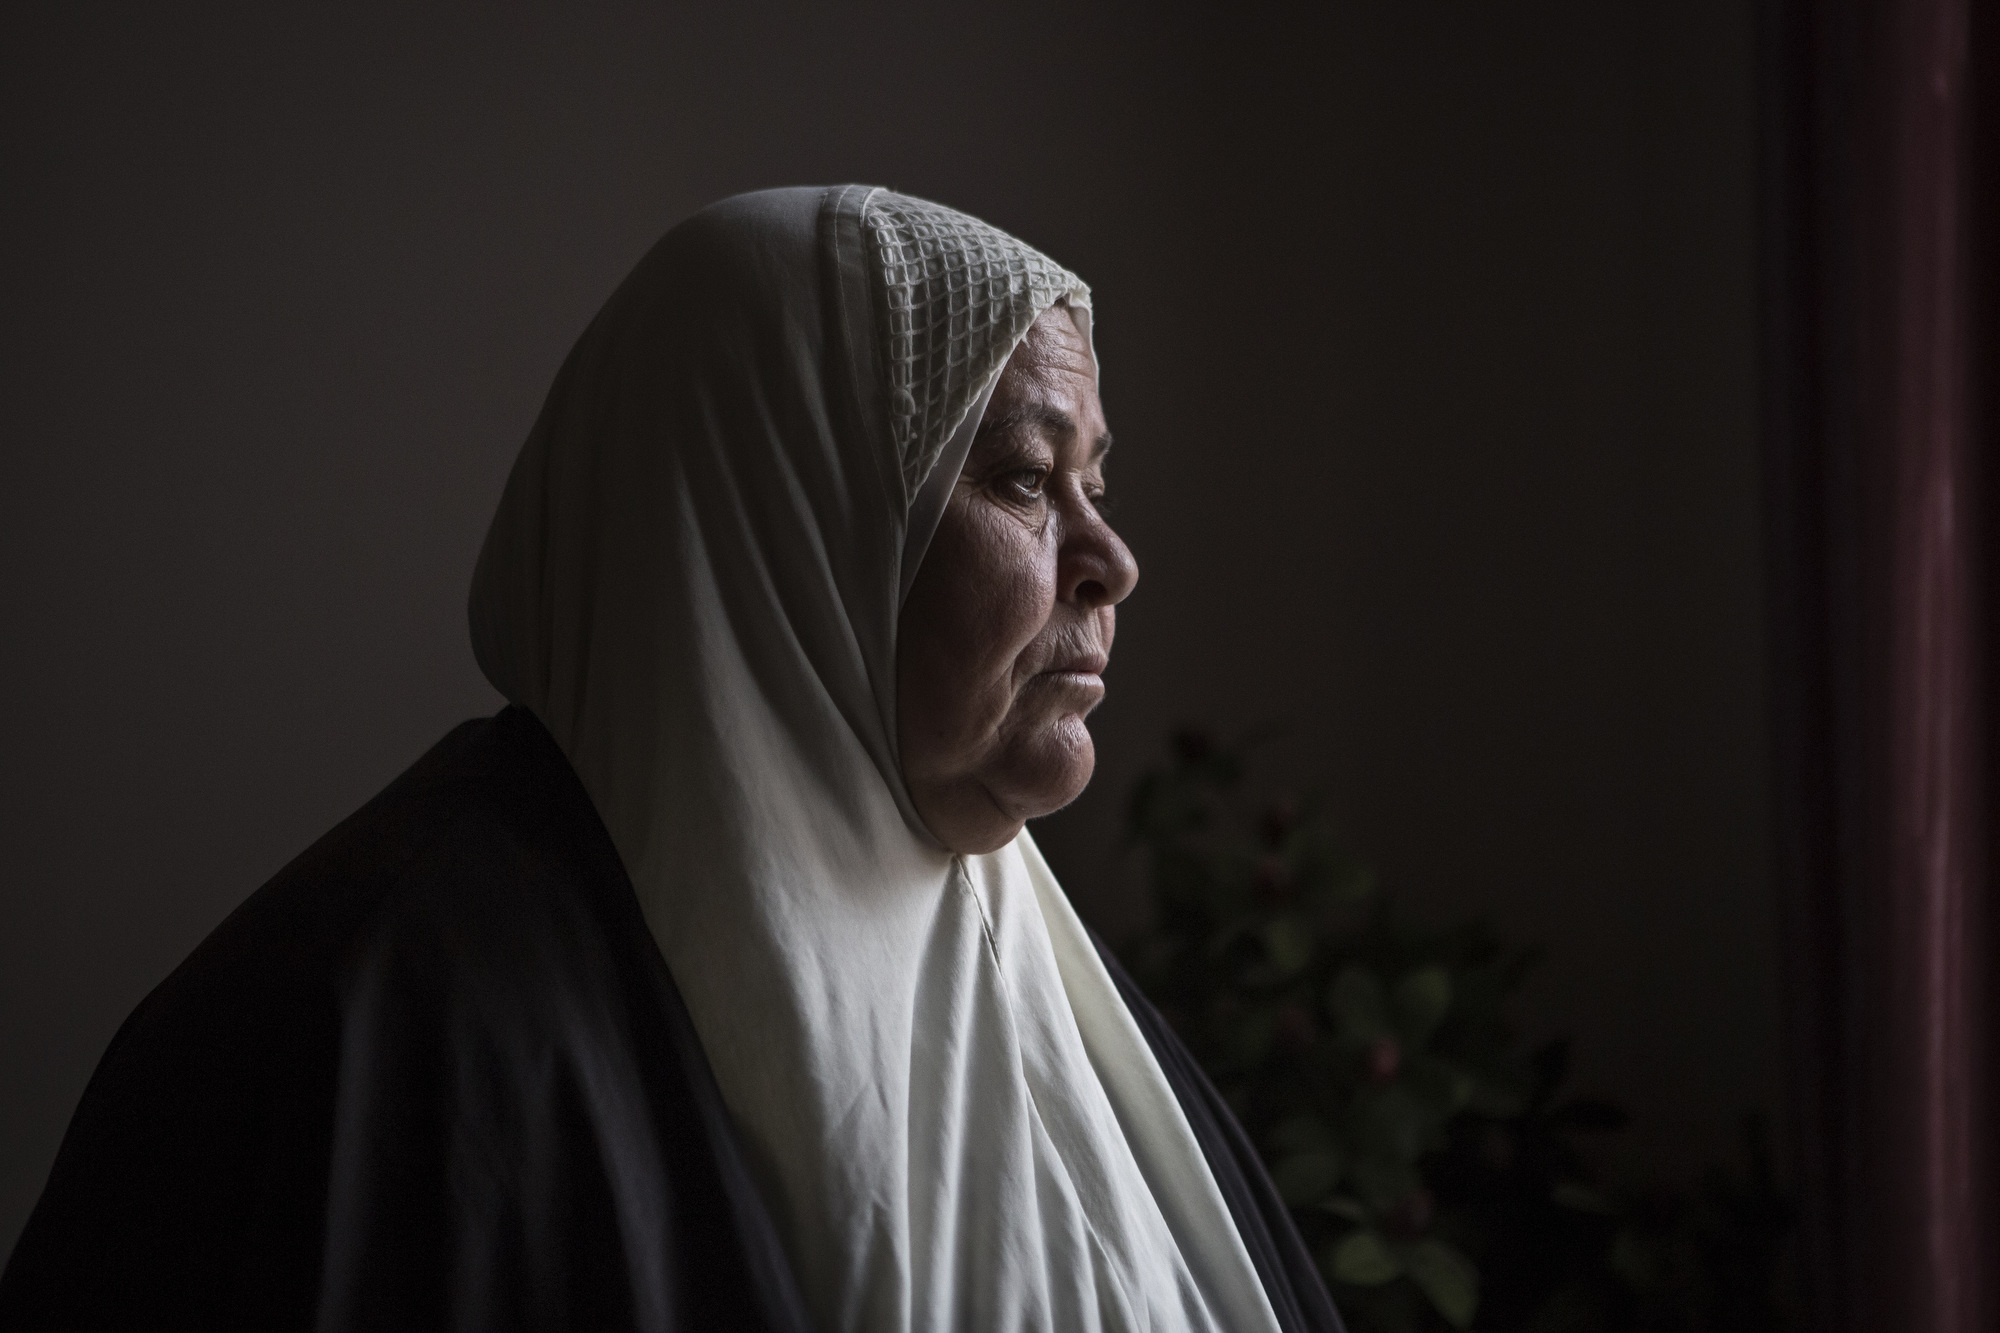 Umm Riyad lost her son when a mortar shell struck the roof of their house in east Mosul.